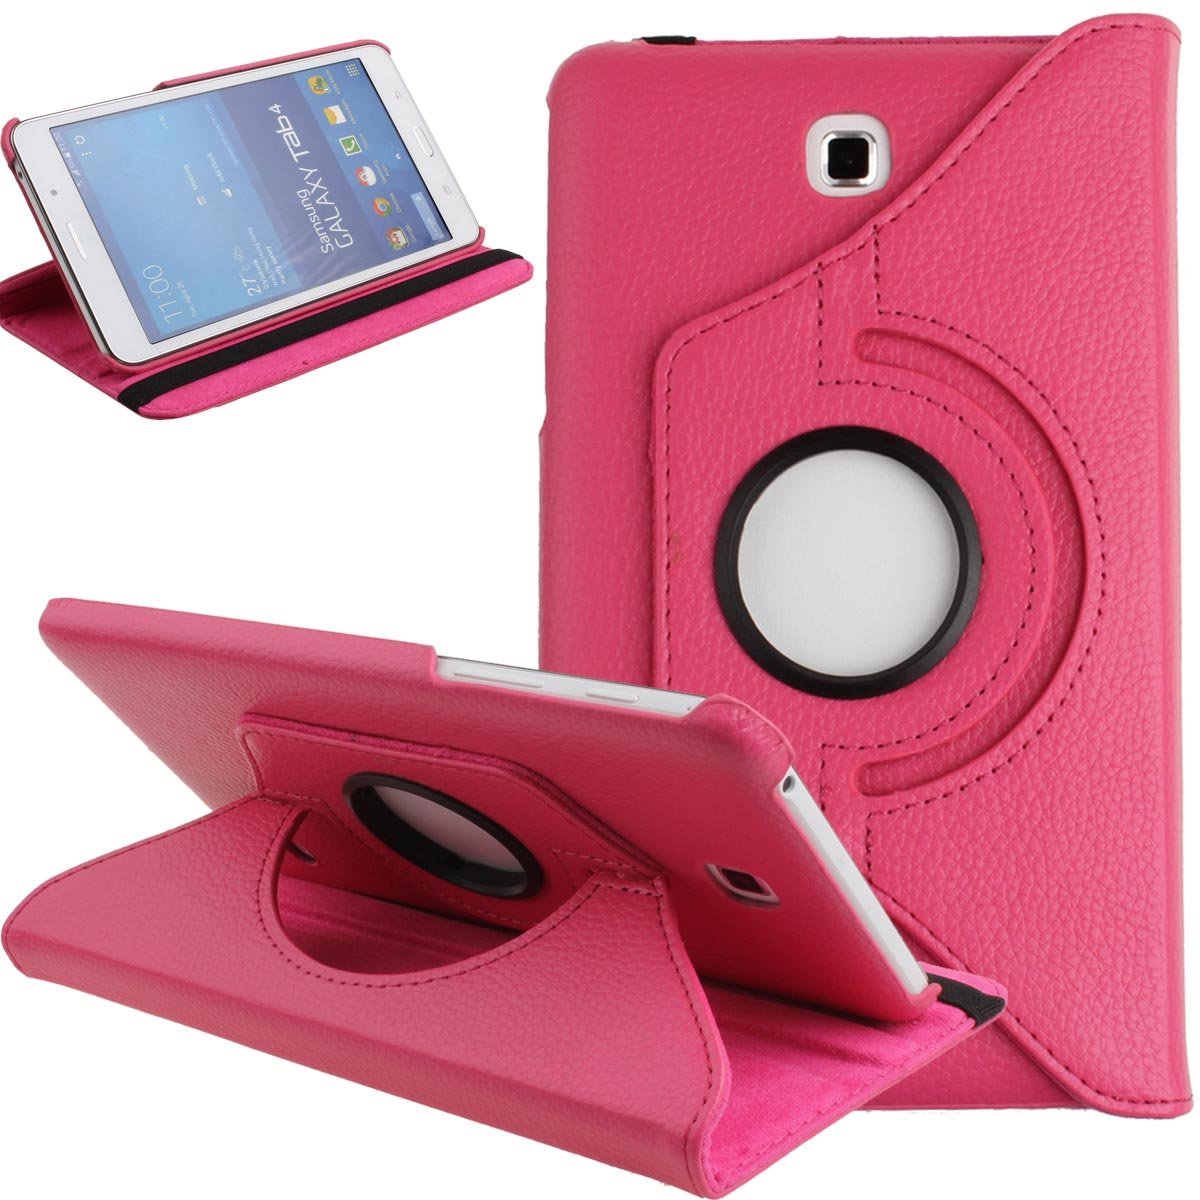 360 Rotating Case For Samsung Galaxy Tab 4 7.0 Flip Holder Stand PU Leather Cover Tab 4 7.0 T230 T235 SM-T230 SM-T235 T231 Cases